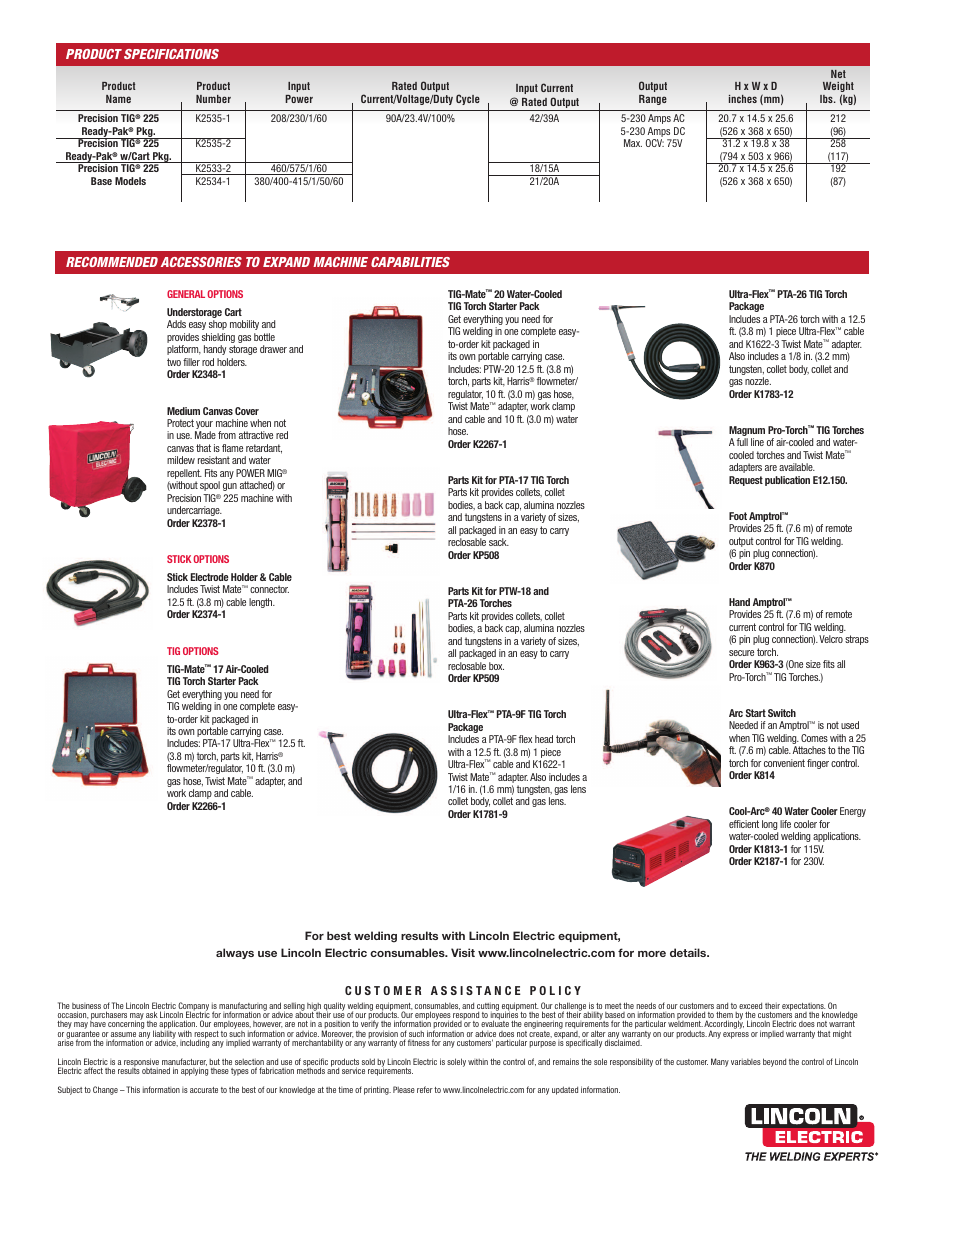 Lincoln International Precision Tig 225 User Manual Page